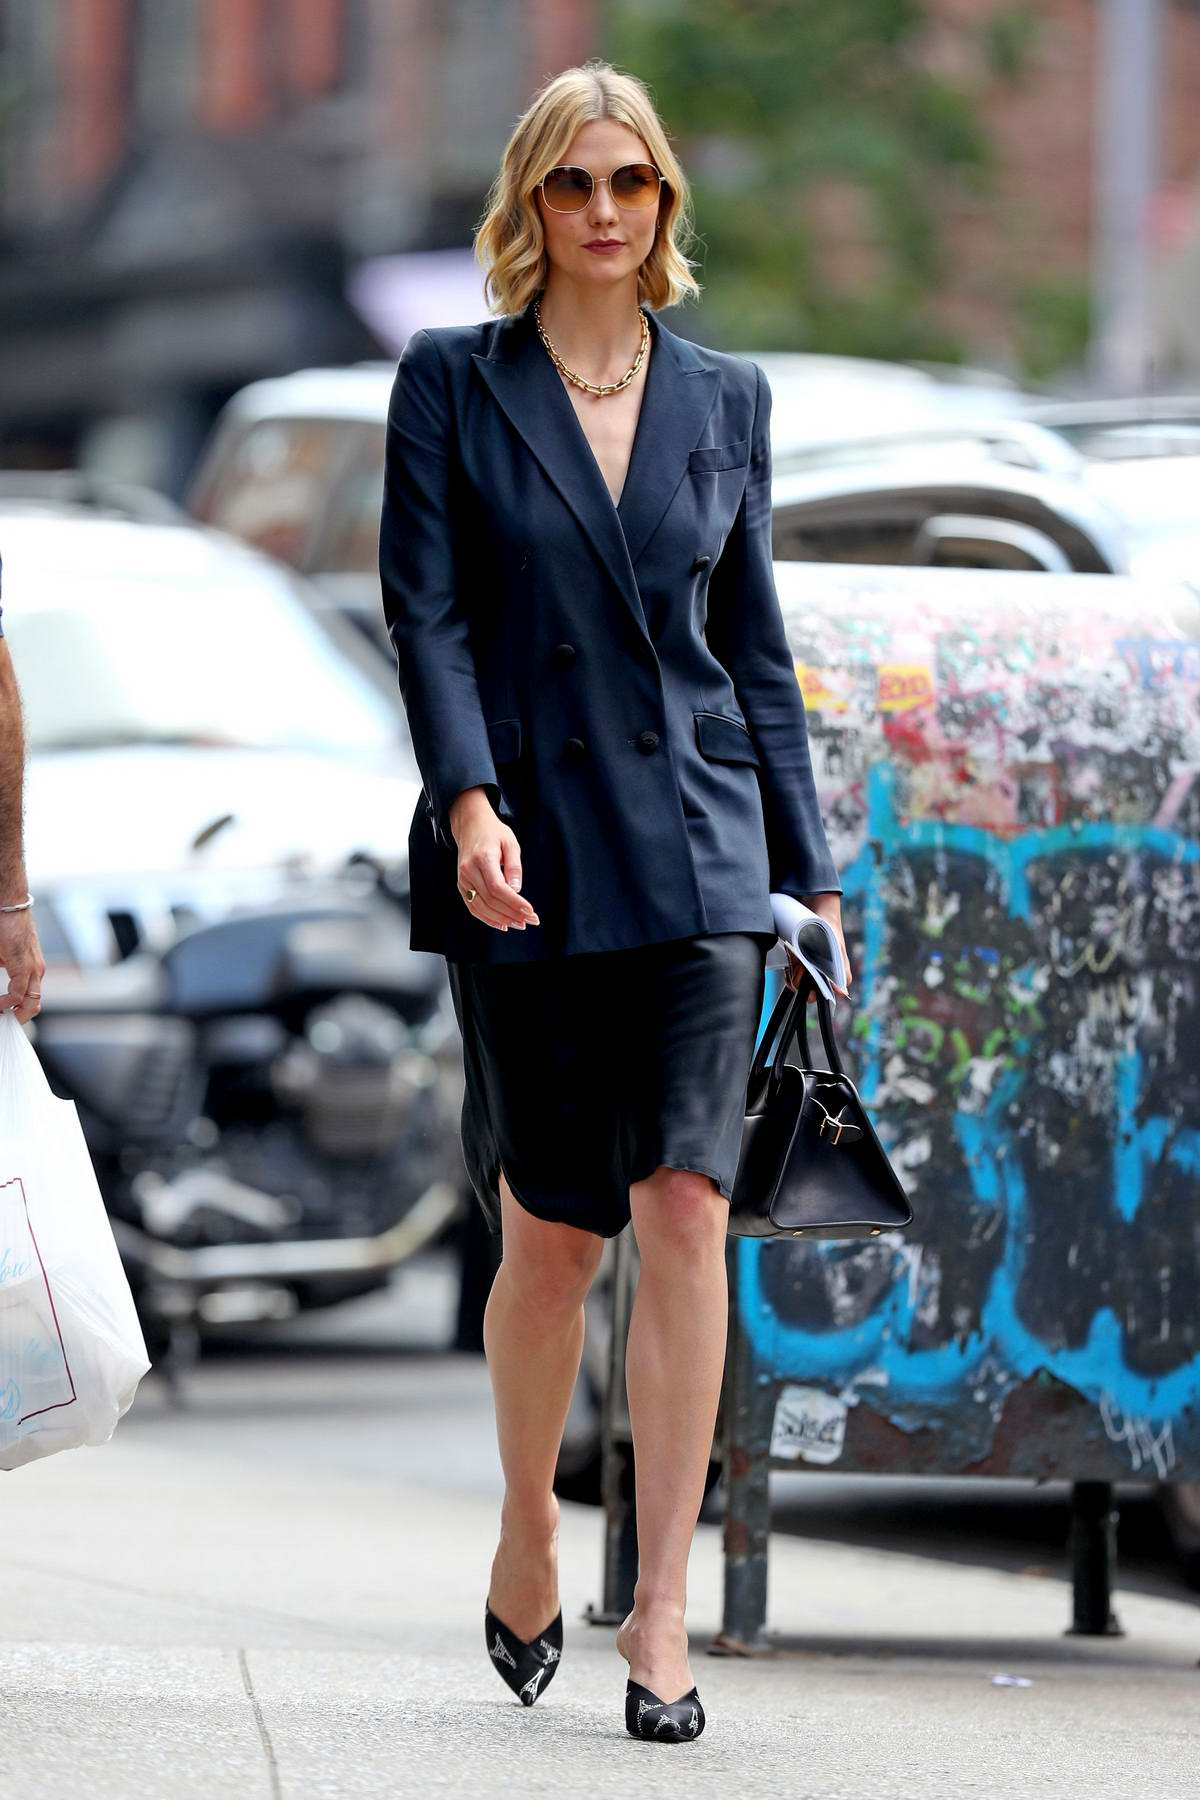 Karlie Kloss dressed for business as she steps out in SoHo, New York City